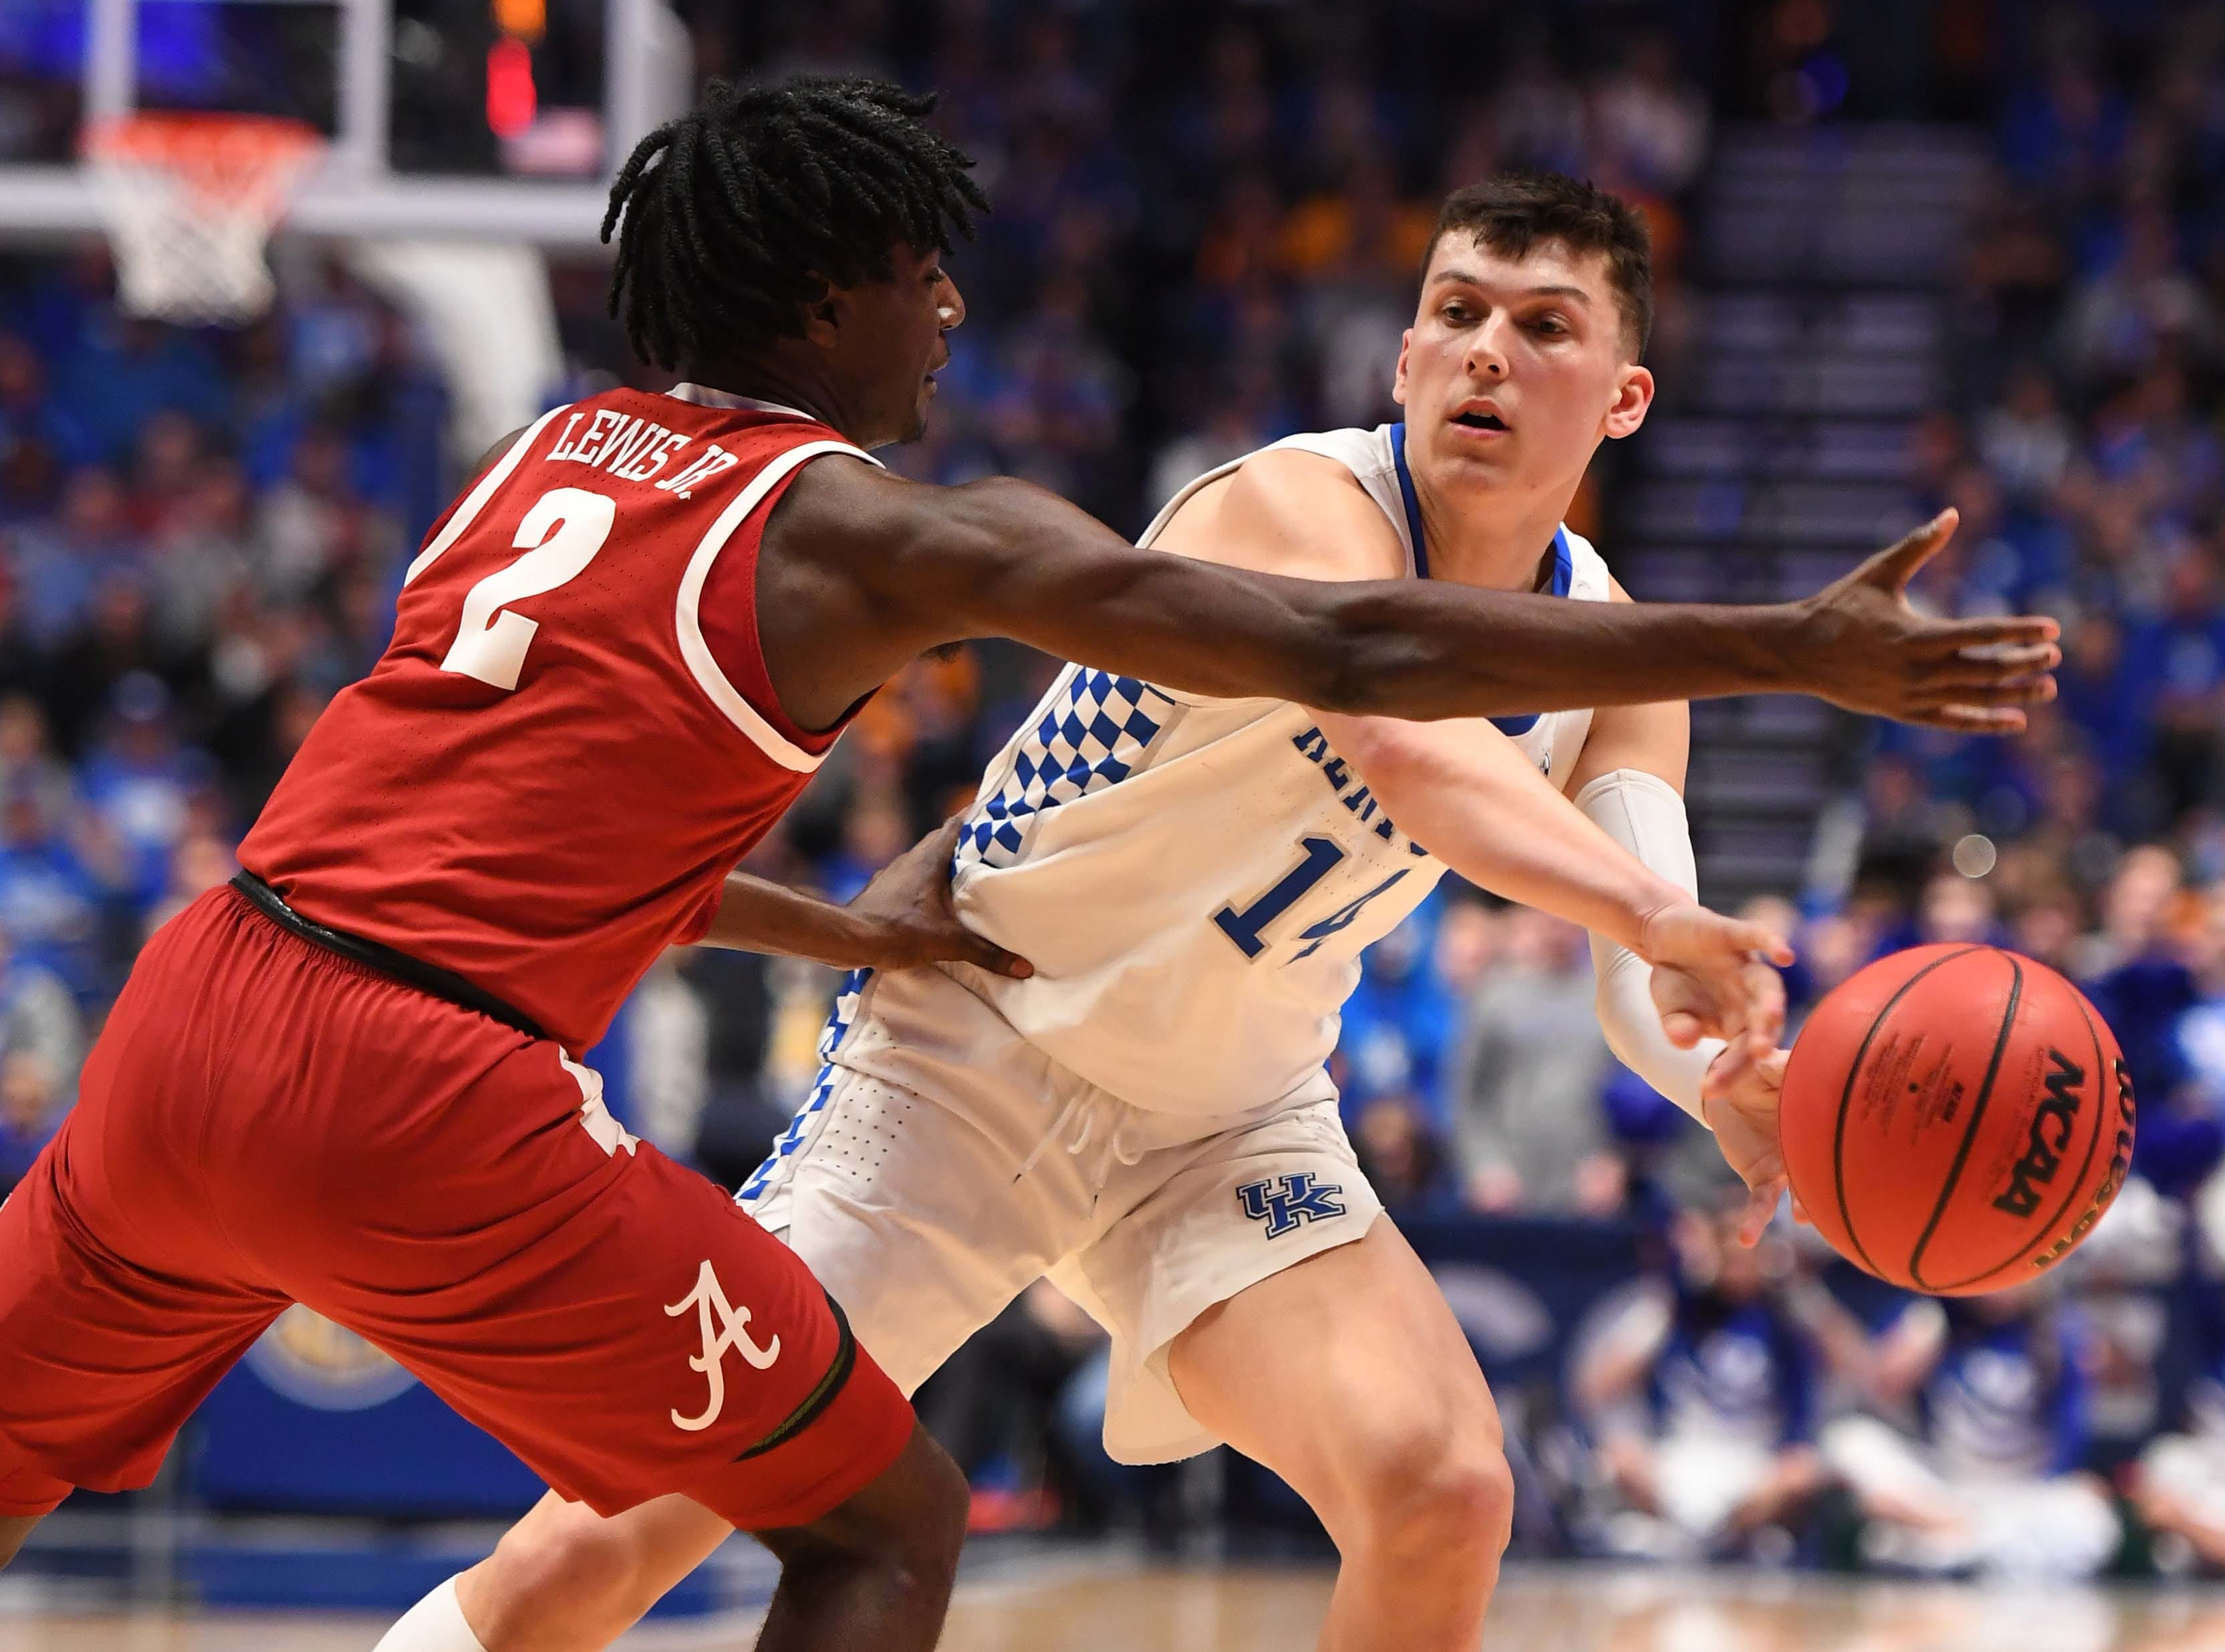 Mar 15, 2019; Nashville, TN, USA; Kentucky Wildcats guard Tyler Herro (14) passes around Alabama Crimson Tide guard Kira Lewis Jr. (2) during the first half of the SEC conference tournament at Bridgestone Arena. Mandatory Credit: Christopher Hanewinckel-USA TODAY Sports